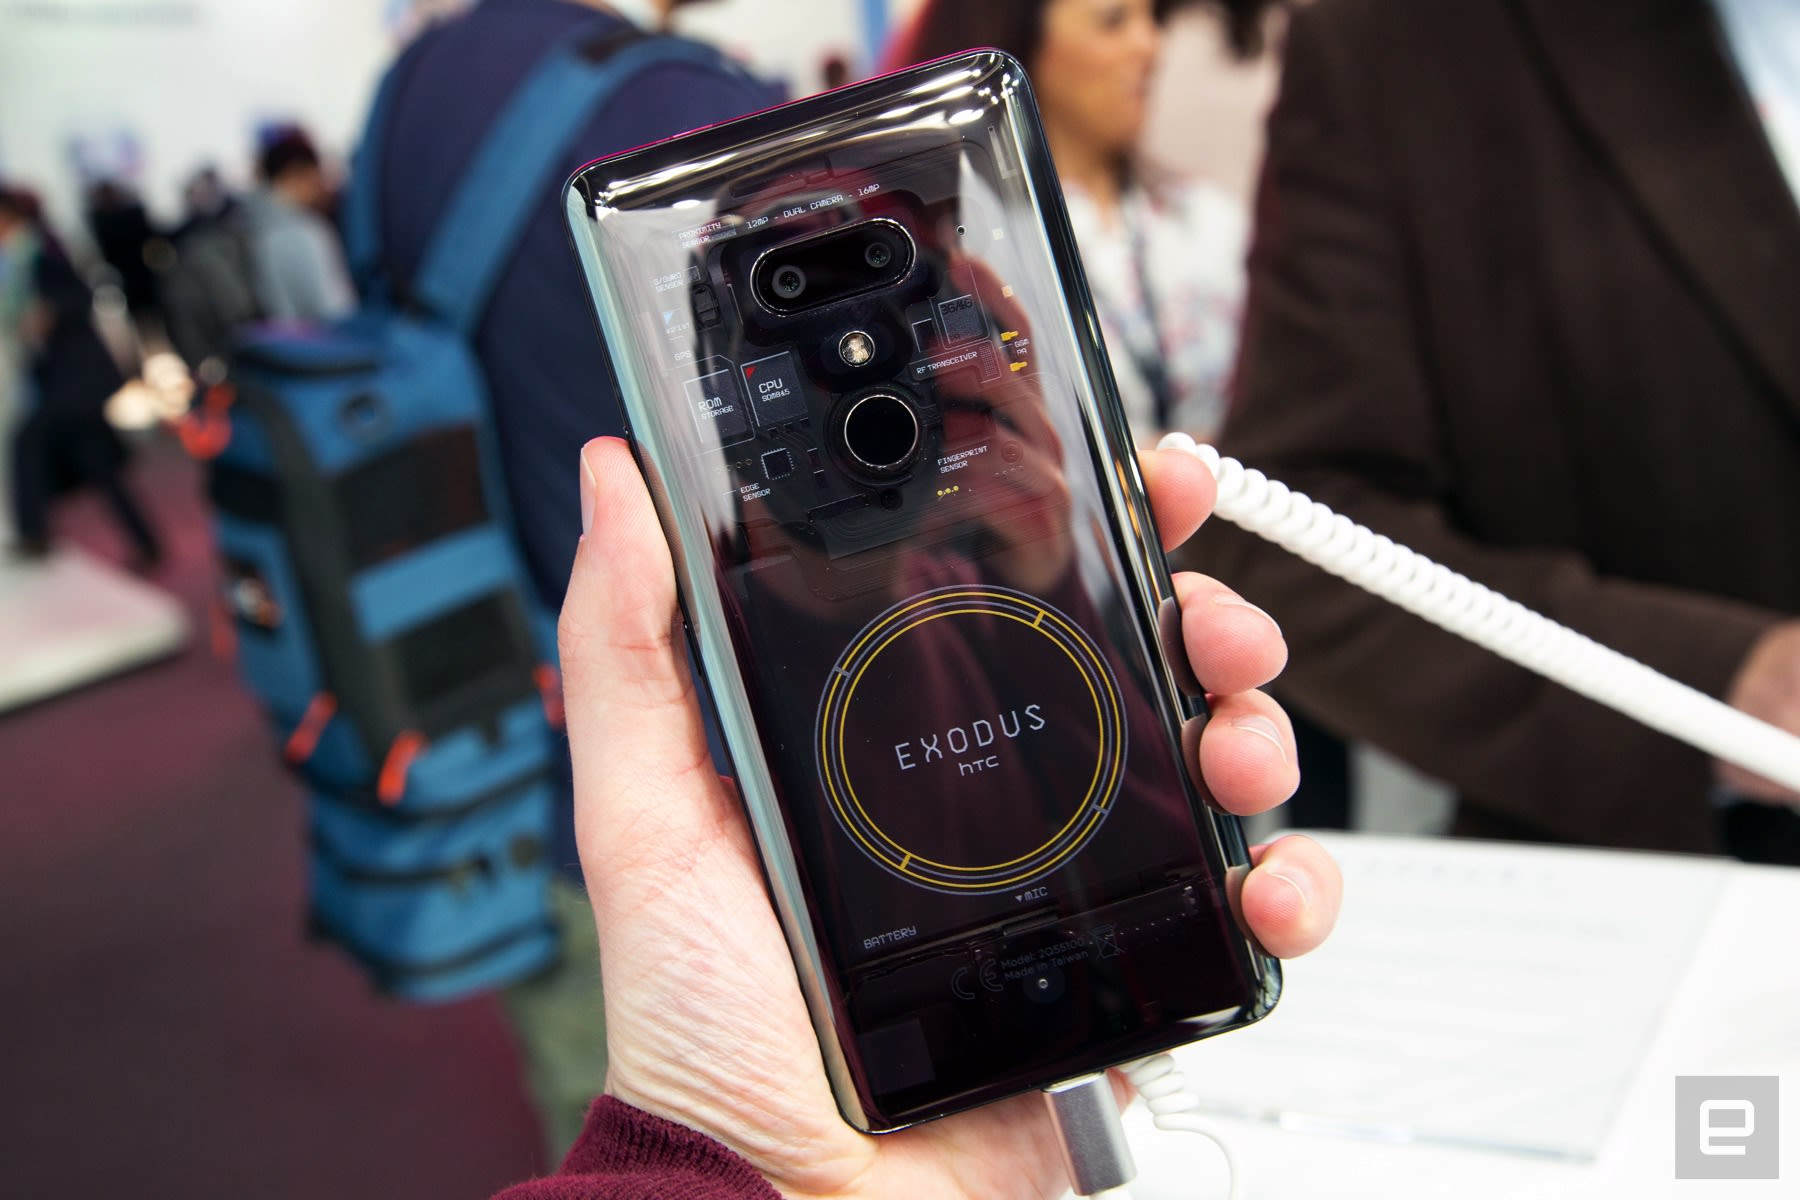 HTC's Exodus smartphone is about much more than Bitcoin